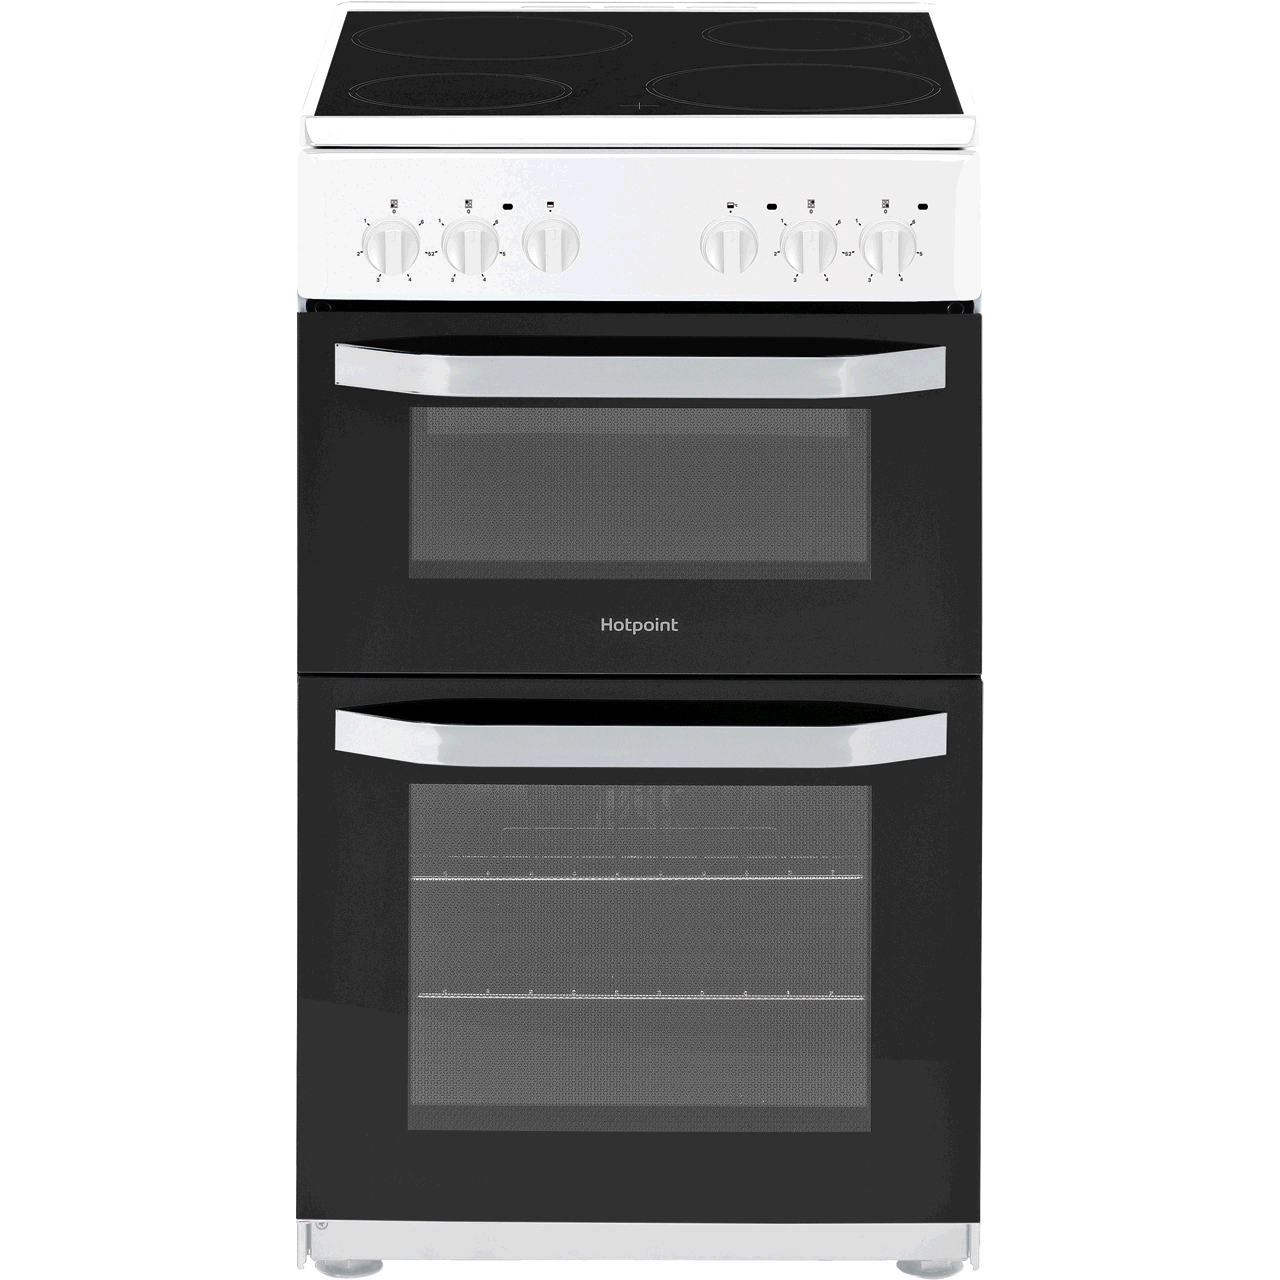 Hotpoint Cloe HD5V92KCB 50cm Electric Cooker with Ceramic Hob - White - B Rated